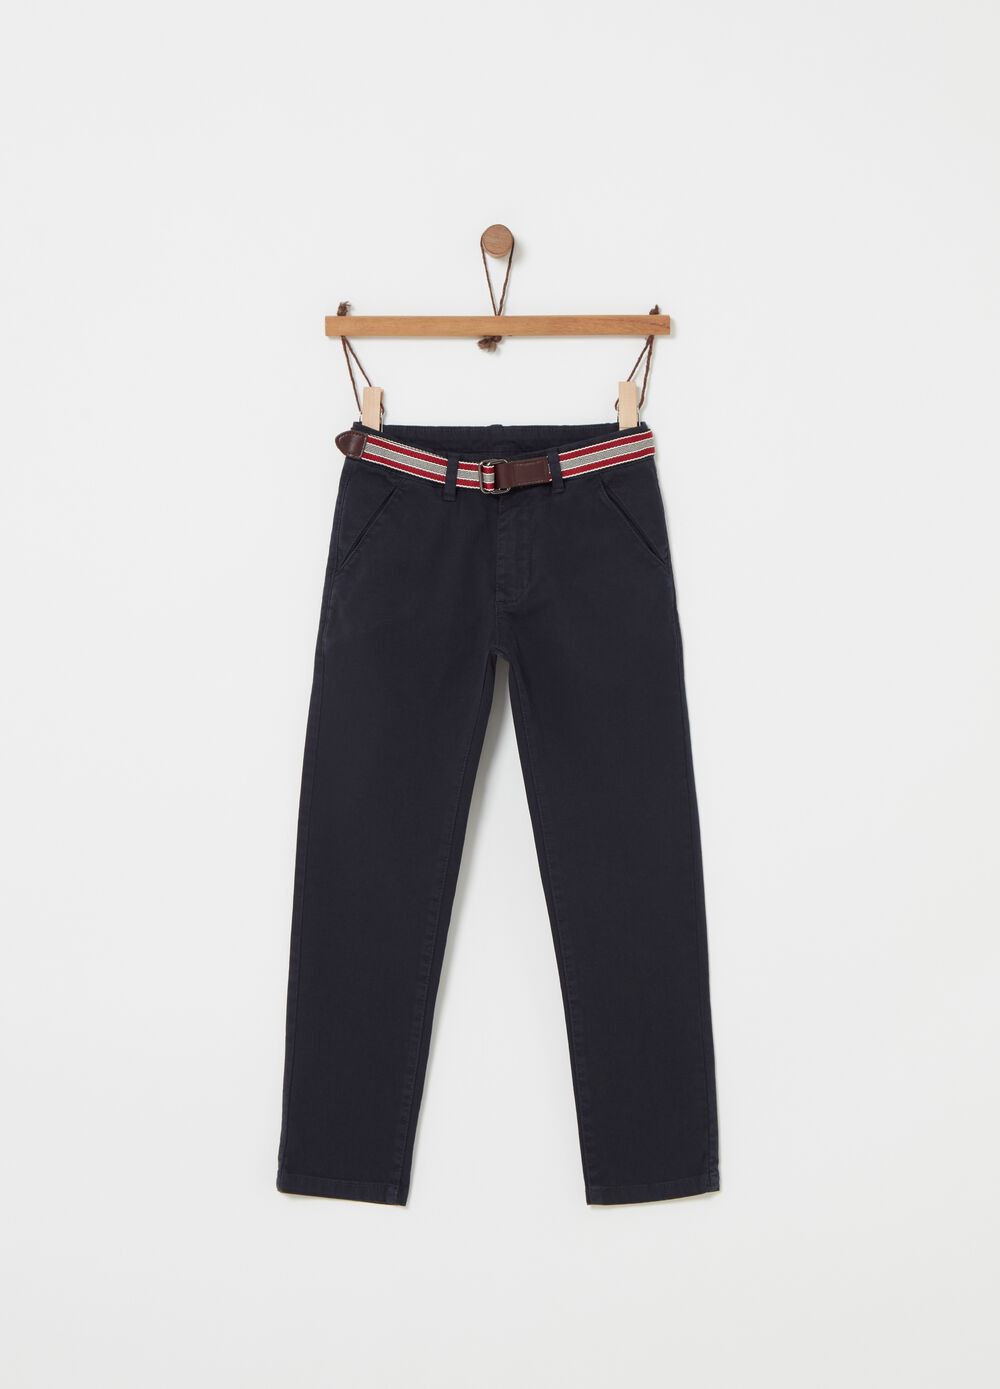 Trousers with striped belt and pockets